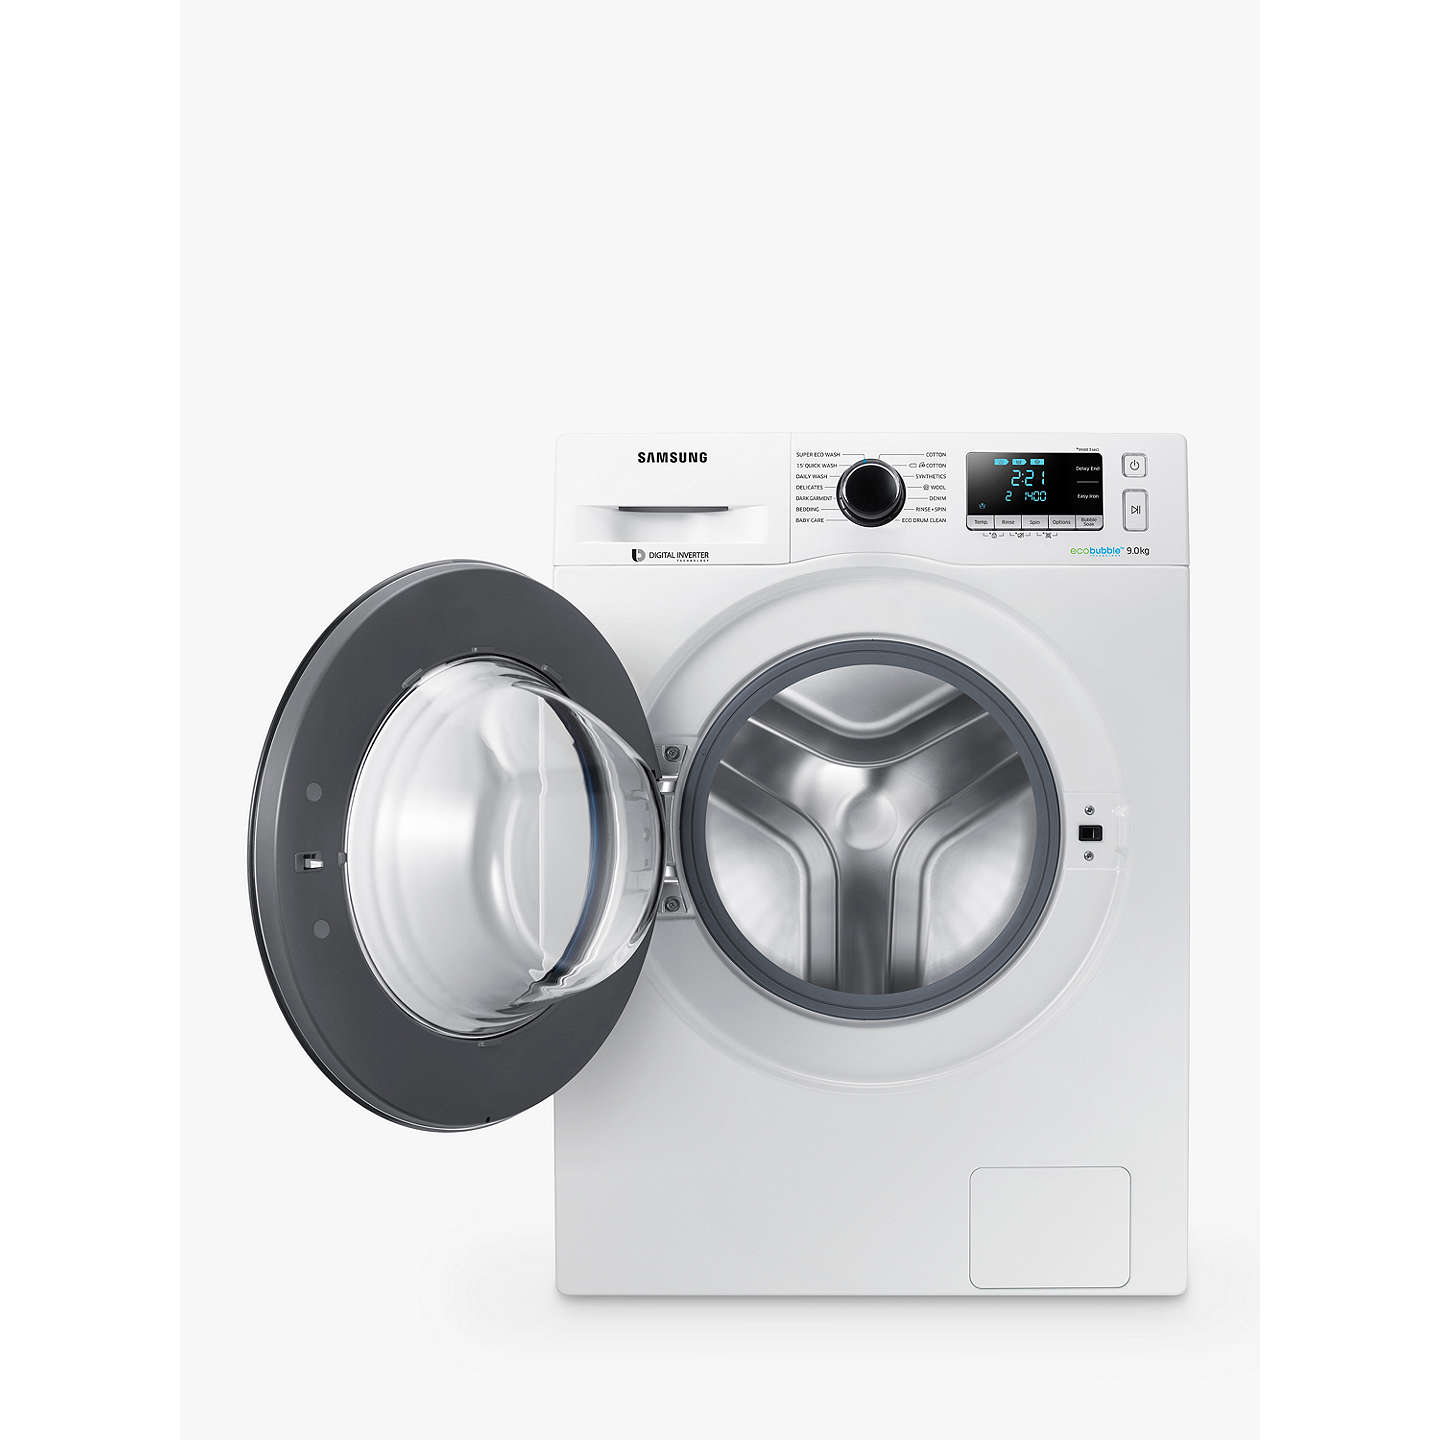 BuySamsung WW90J5456FW ecobubble™  Freestanding Washing Machine, 9kg Load, A+++ Energy Rating, 1400rpm Spin, White/Grey Online at johnlewis.com